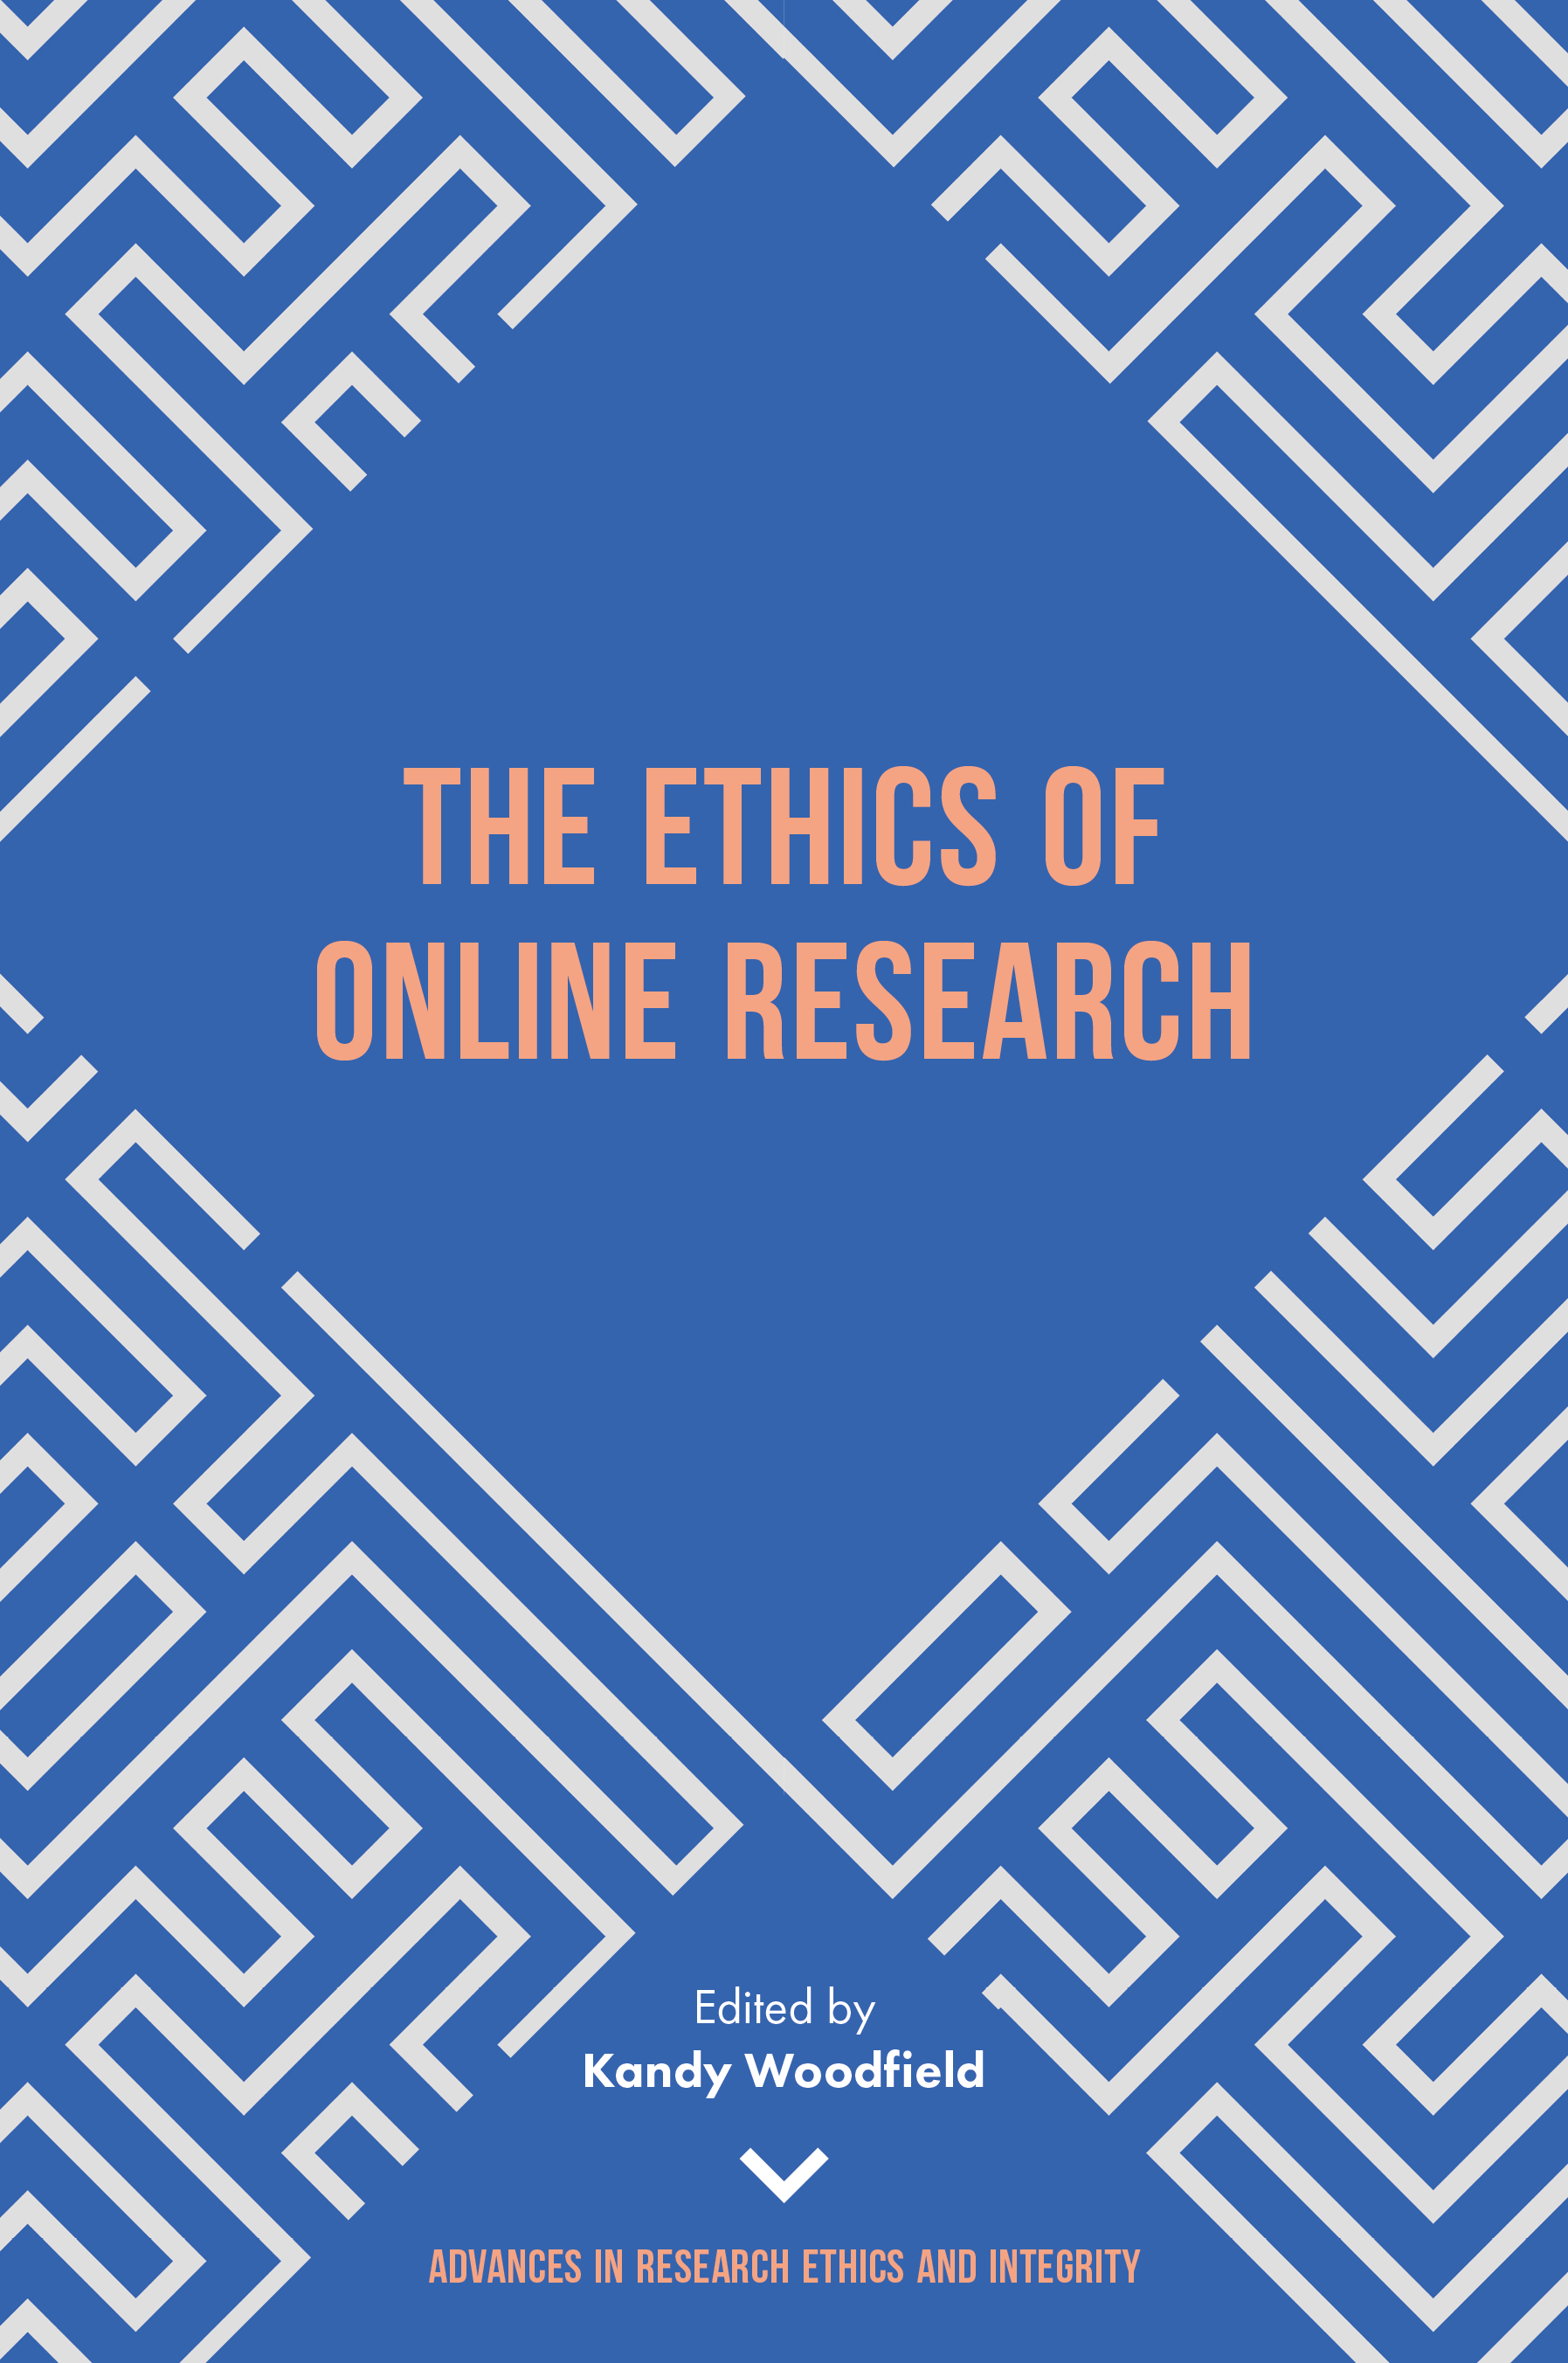 Book cover for The Ethics of Online Research a book by Kandy  Woodfield